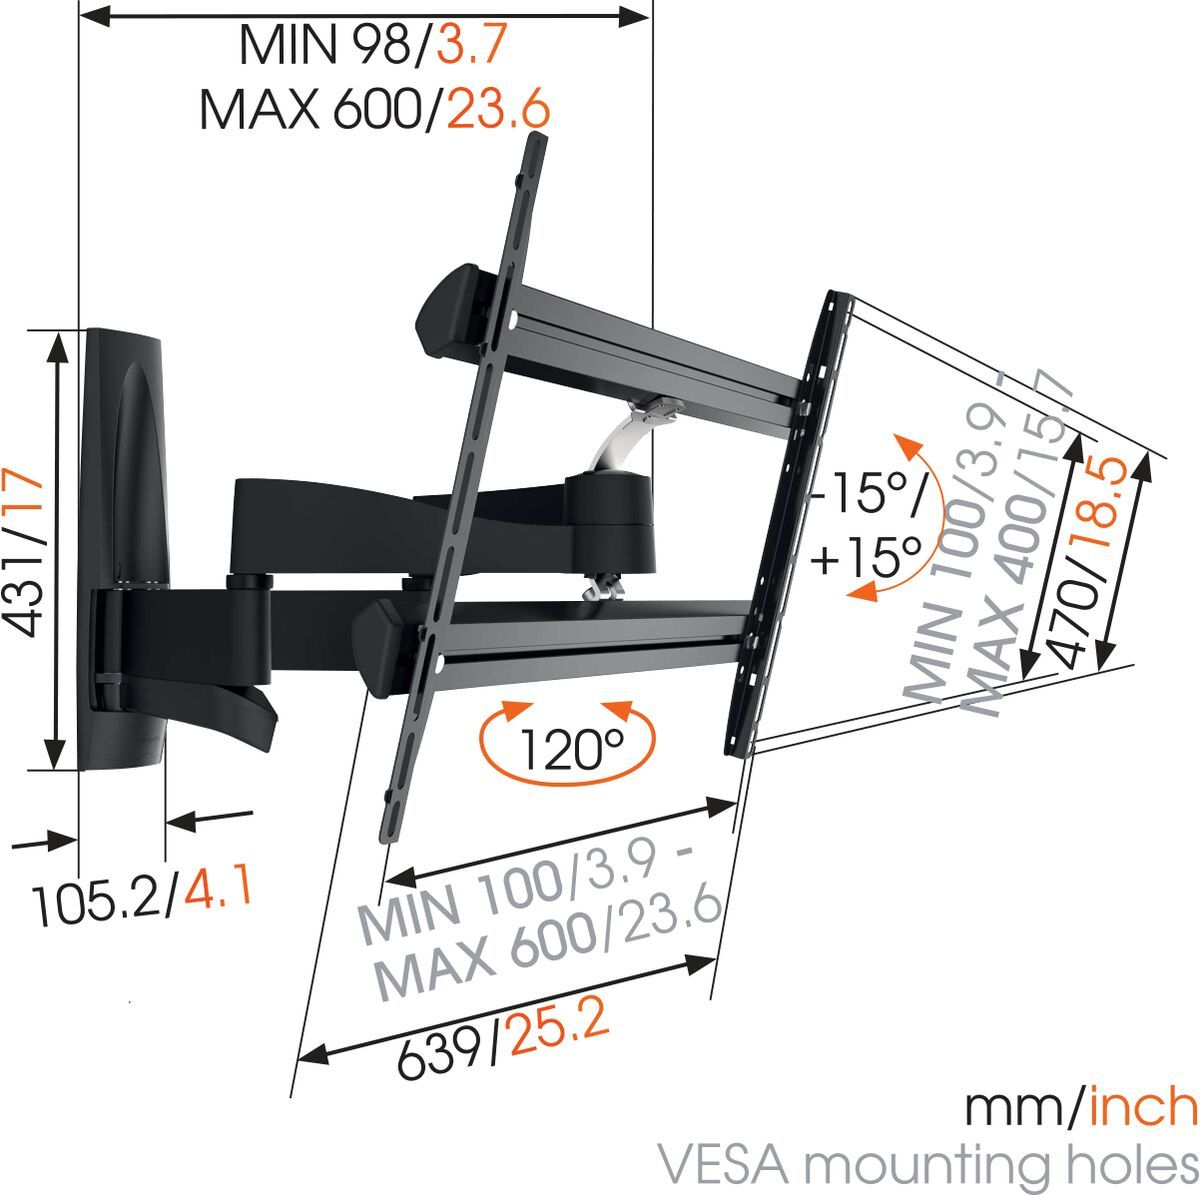 Vogel's WALL 2350 Full-Motion TV Wall Mount - Suitable for 40 up to 65 inch TVs - Motion (up to 120°) - Tilt up to 15° - Dimensions